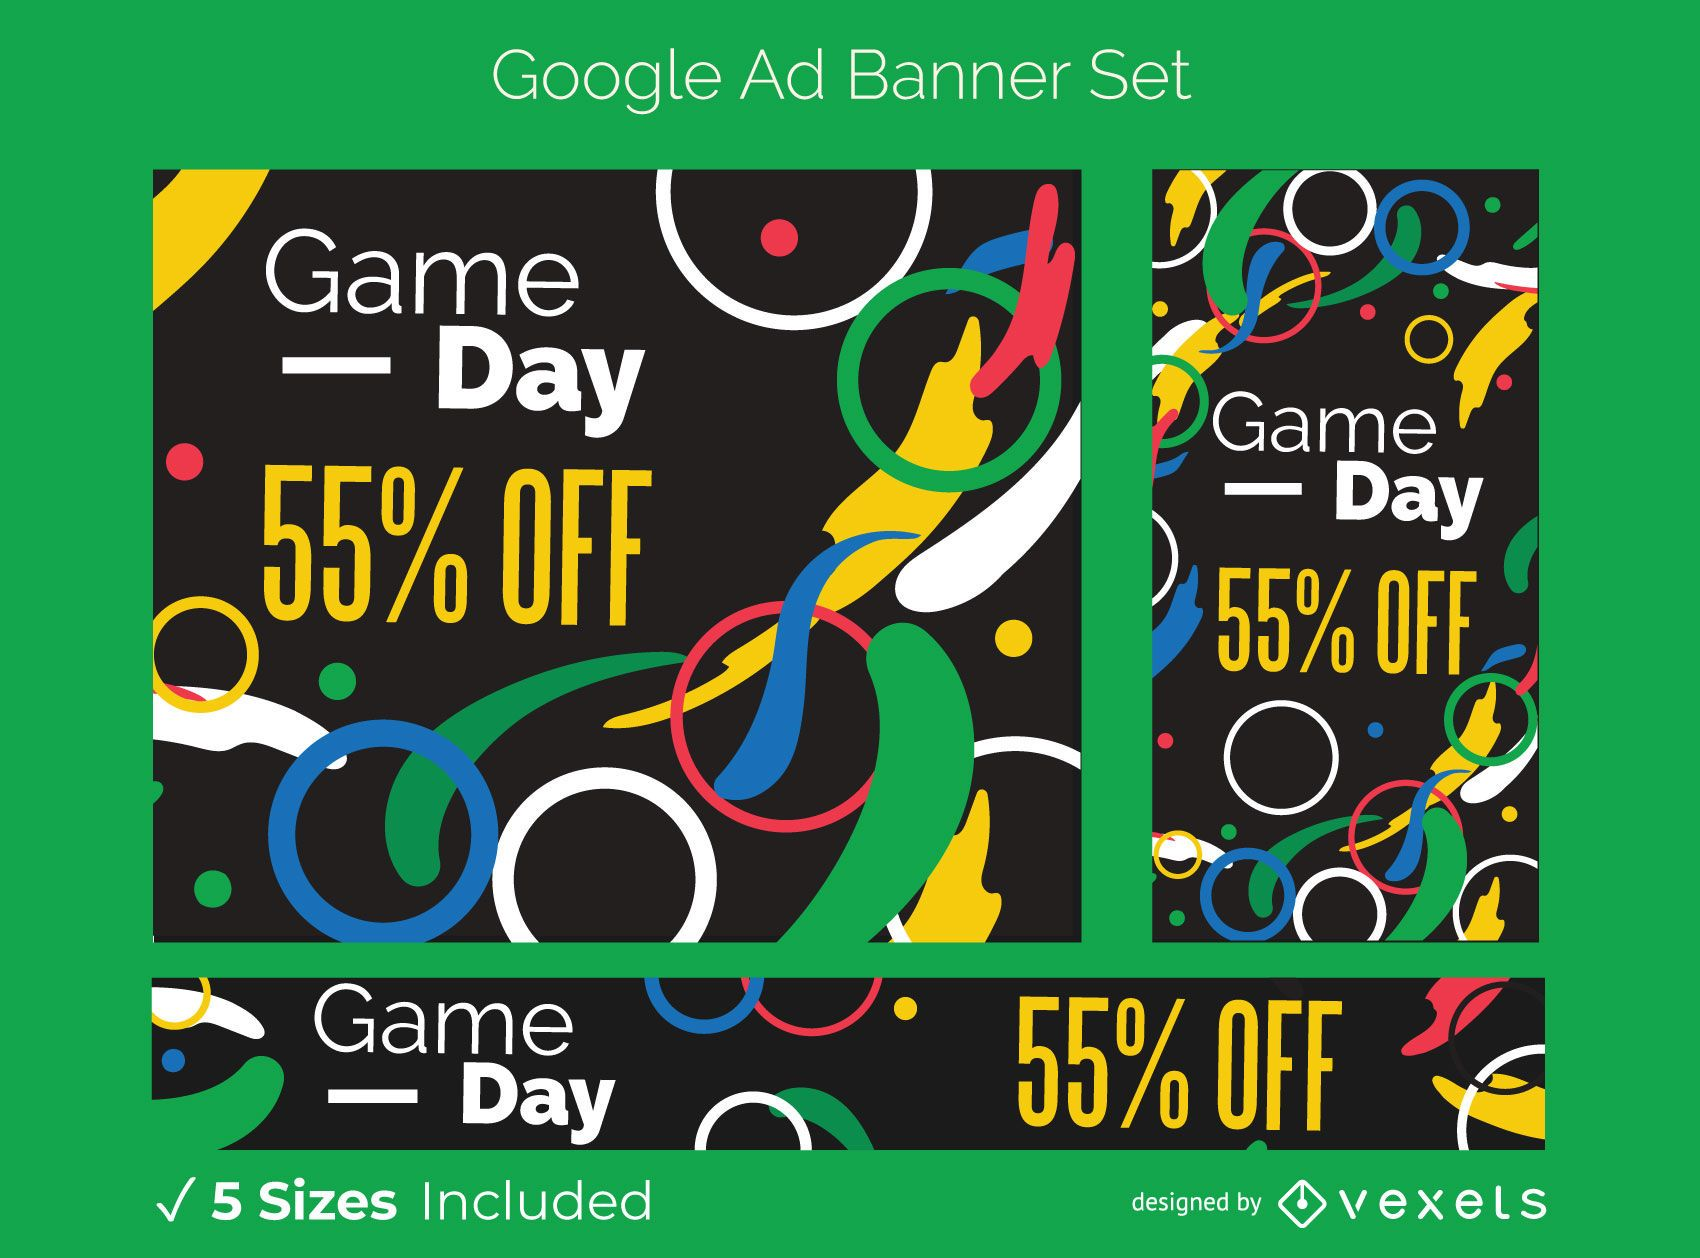 Olympic Games Google Ad Banner Set